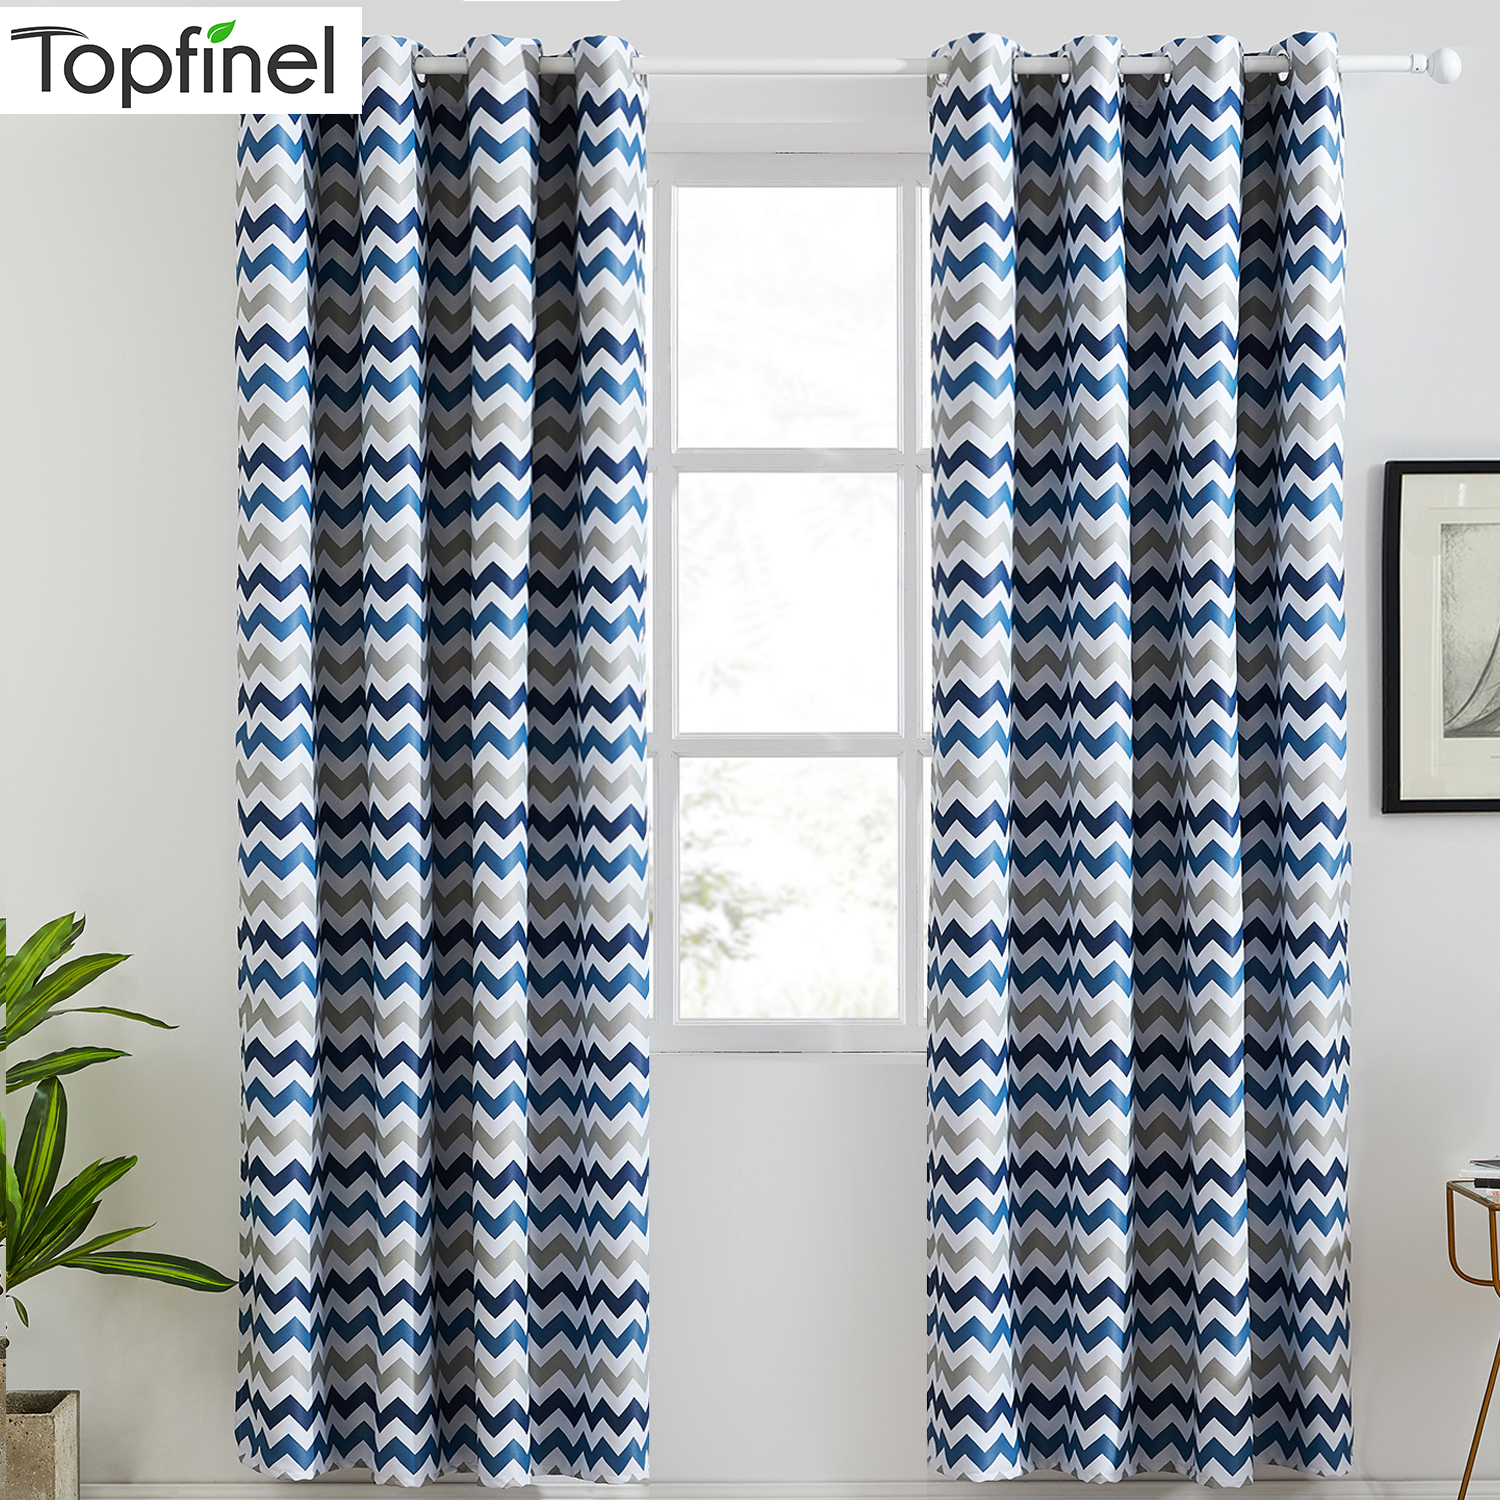 Topfinel Geometric Wave Blackout Curtains For Living Room Printed Yellow Blue Window Treatment Drapes Modern Bedroom Curtains、